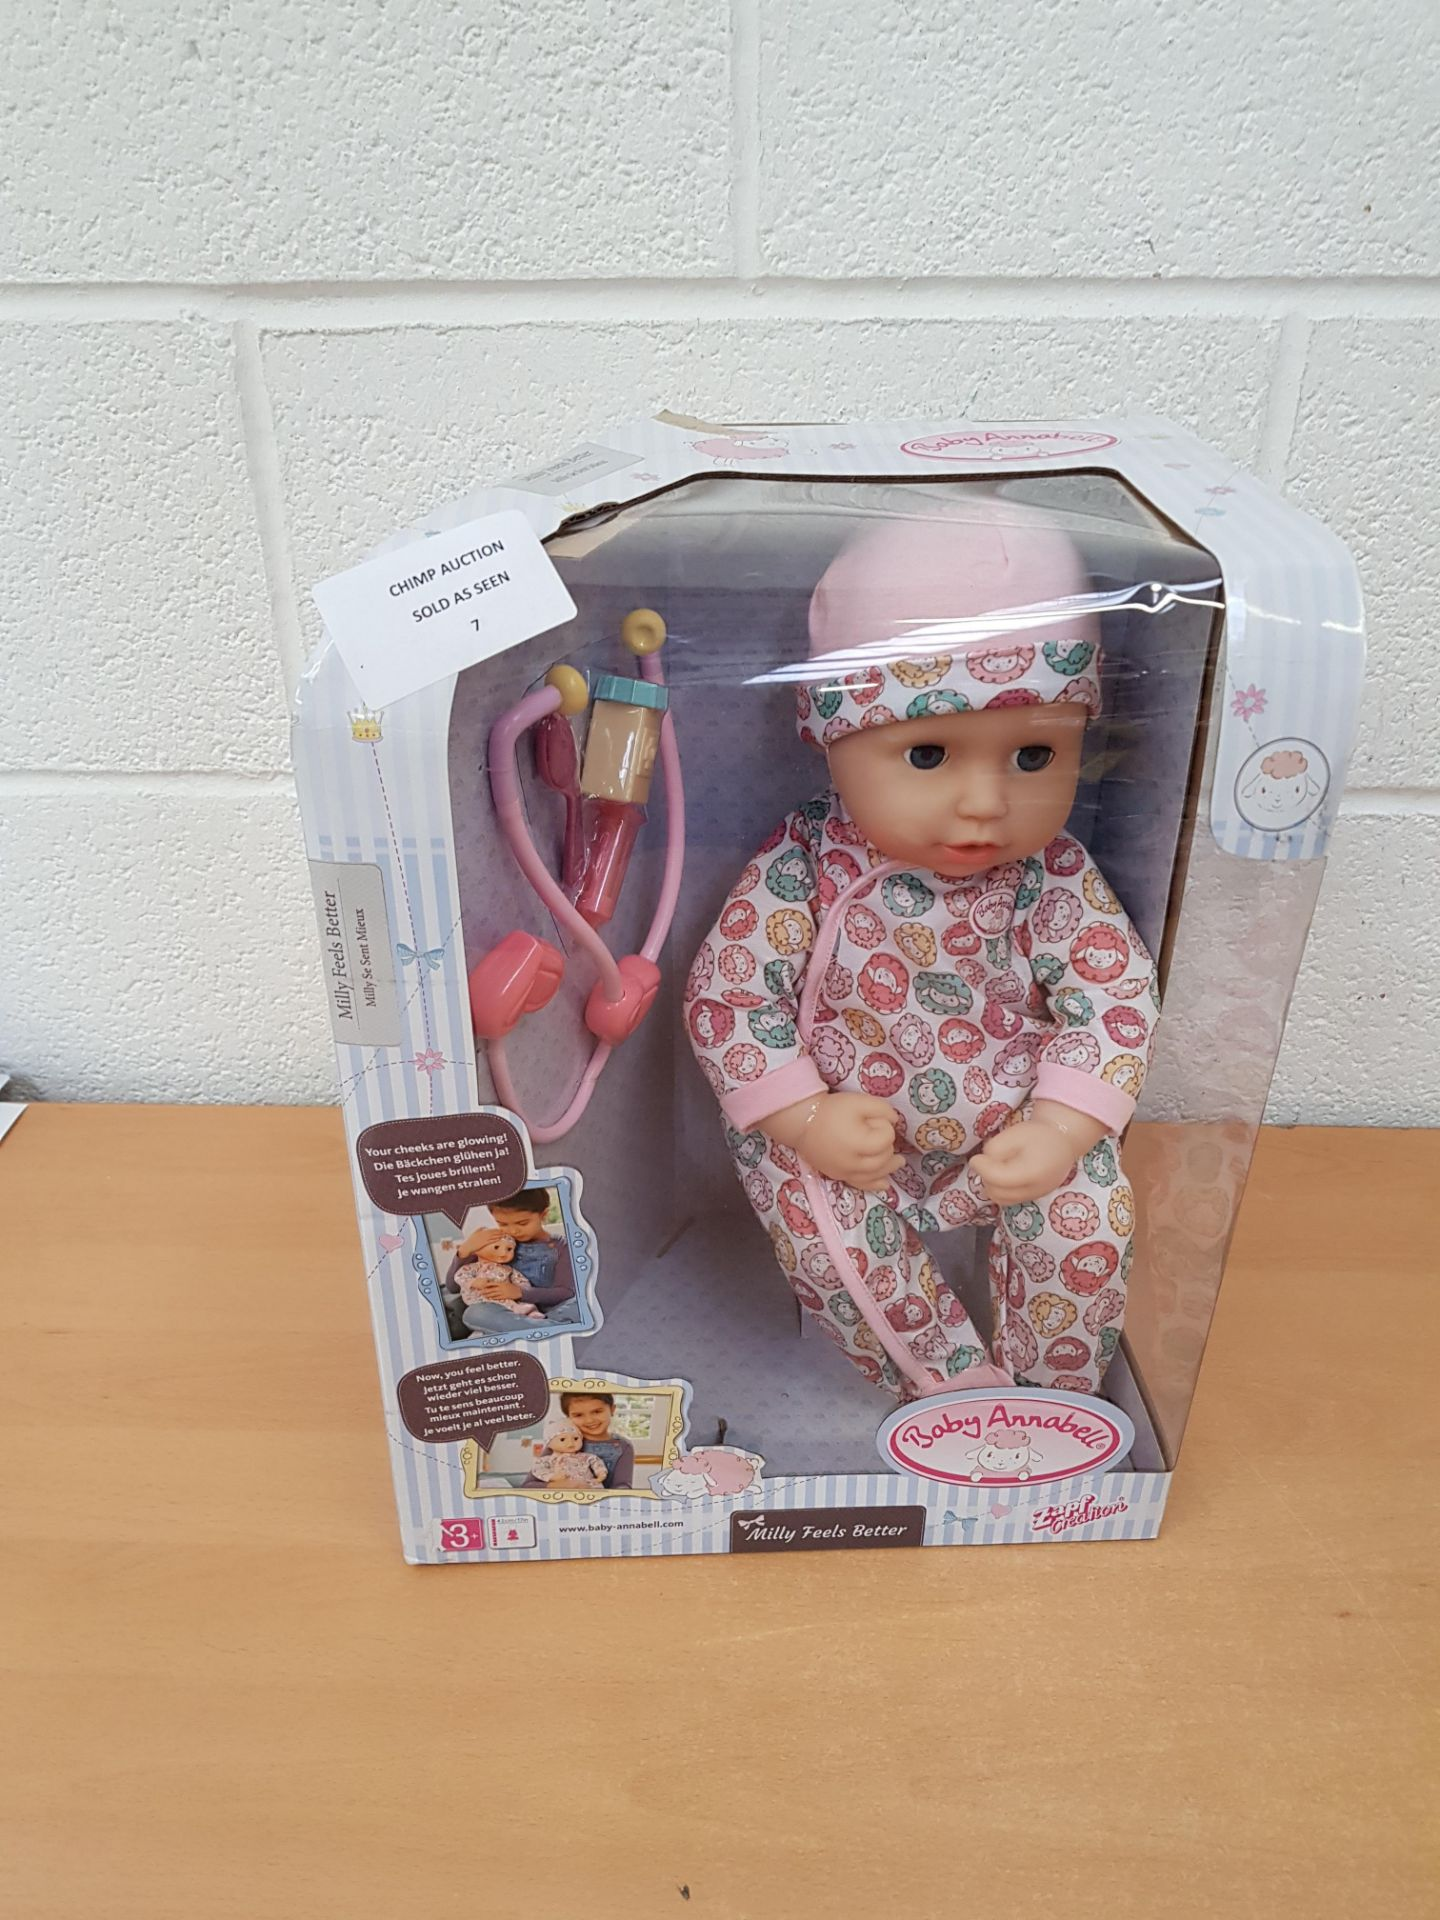 Lot 7 - Baby Annabell Interactive doll playset RRP £59.99